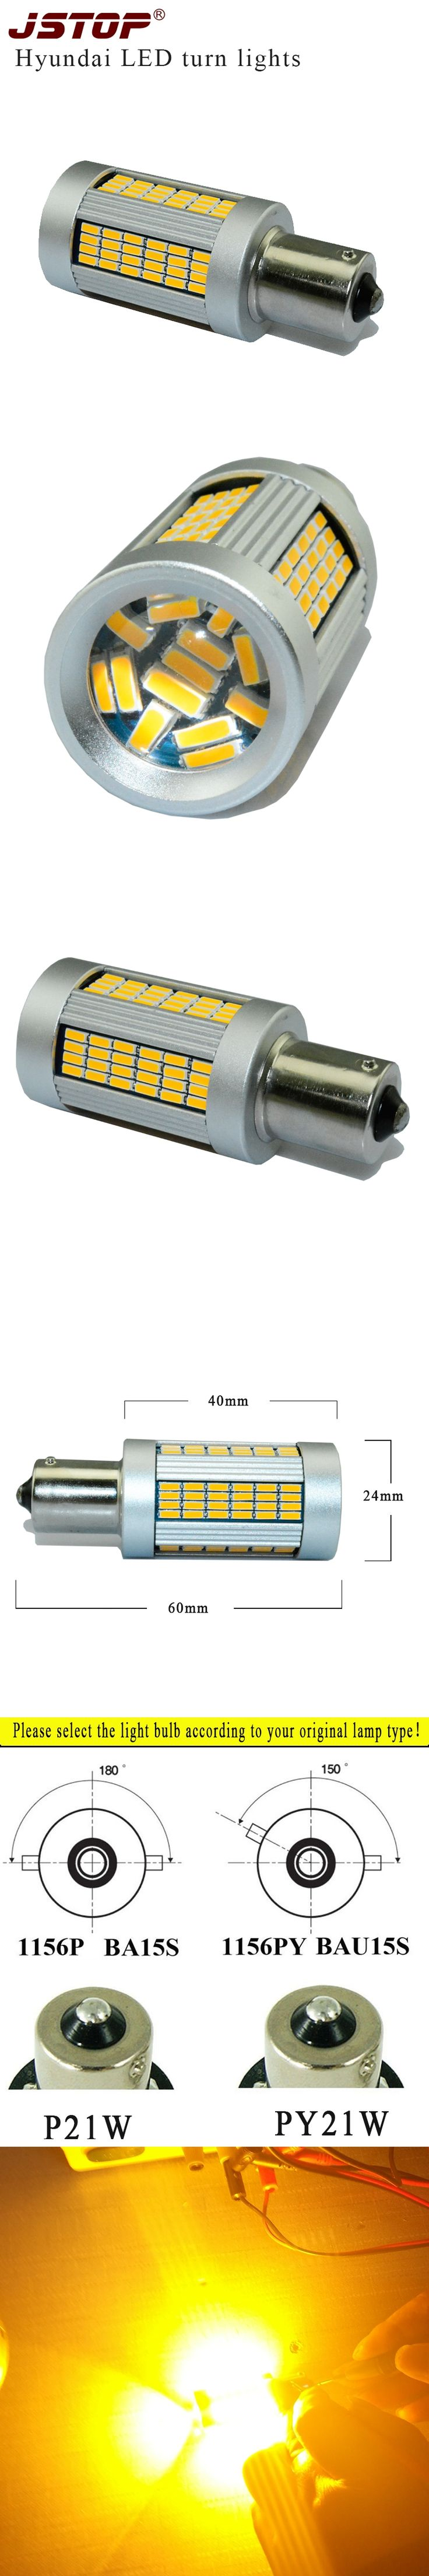 JSTOP No flicker 100% No errors 1156 P21W car canbus Turning bulbs led 12V BAU15s exterior lamp 25W PY21W  yellow turning lights